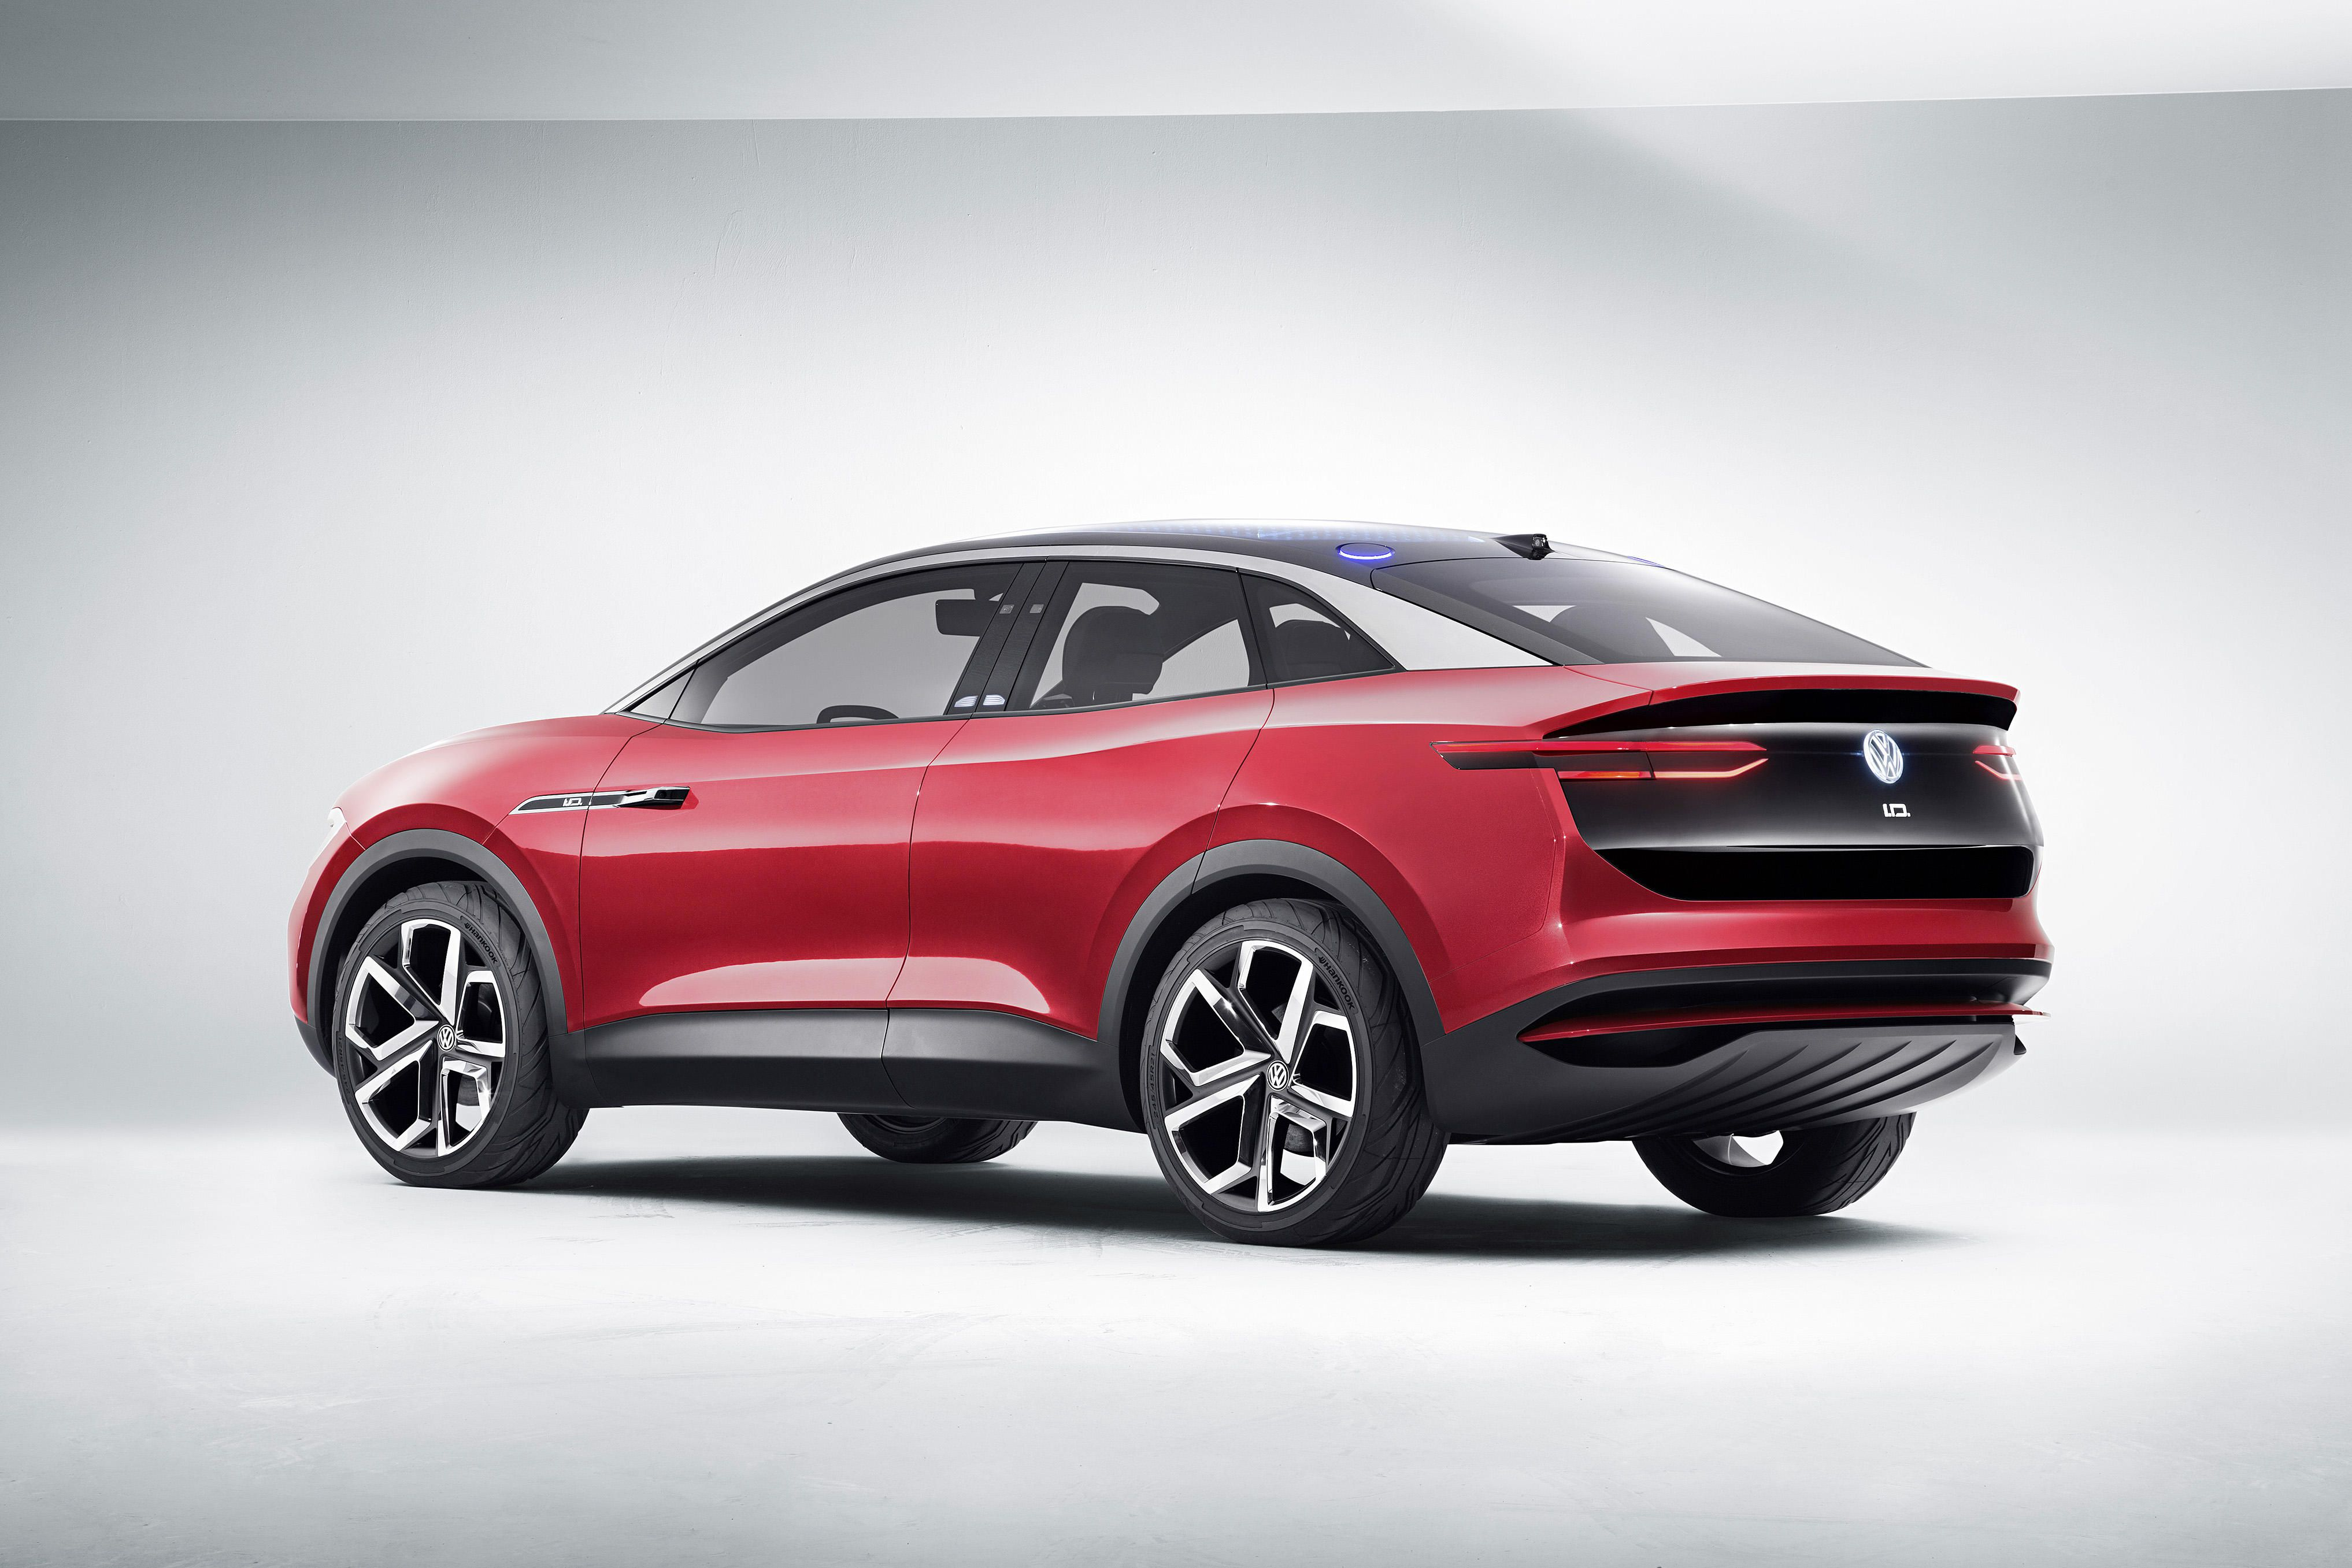 88 Gallery of Volkswagen I D Crozz 2020 Release with Volkswagen I D Crozz 2020